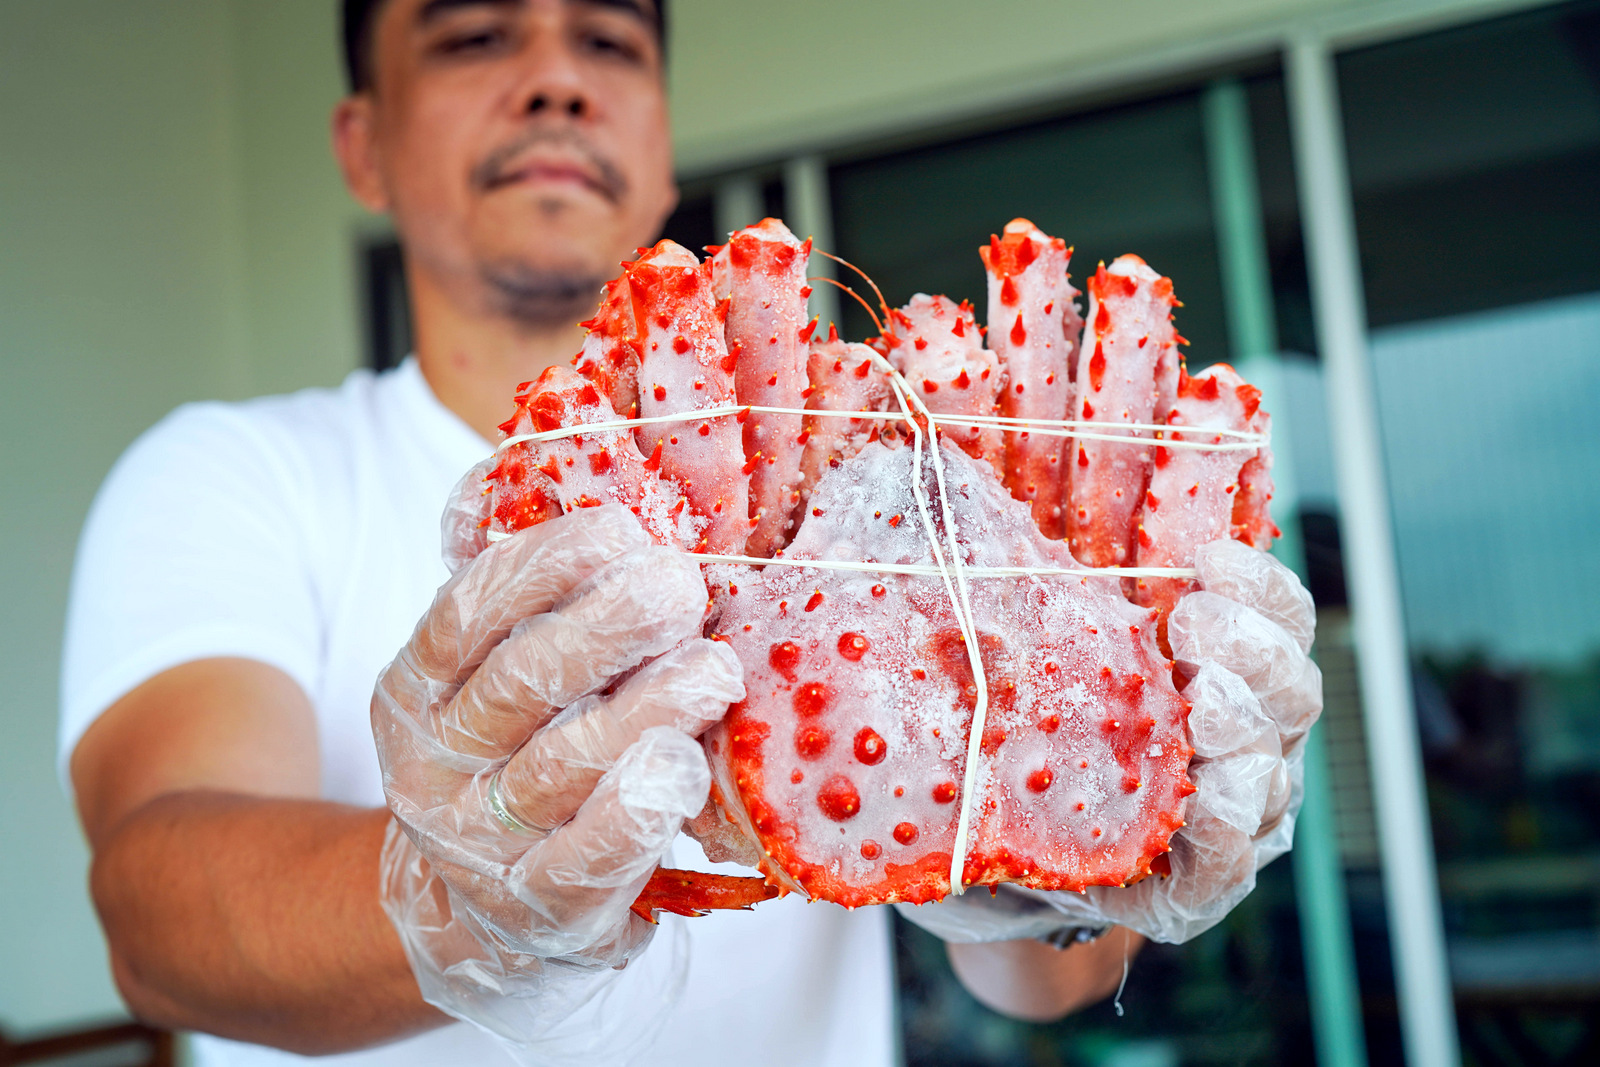 vfresh food supply: seafood & groceries, from king crabs to pineapple tarts